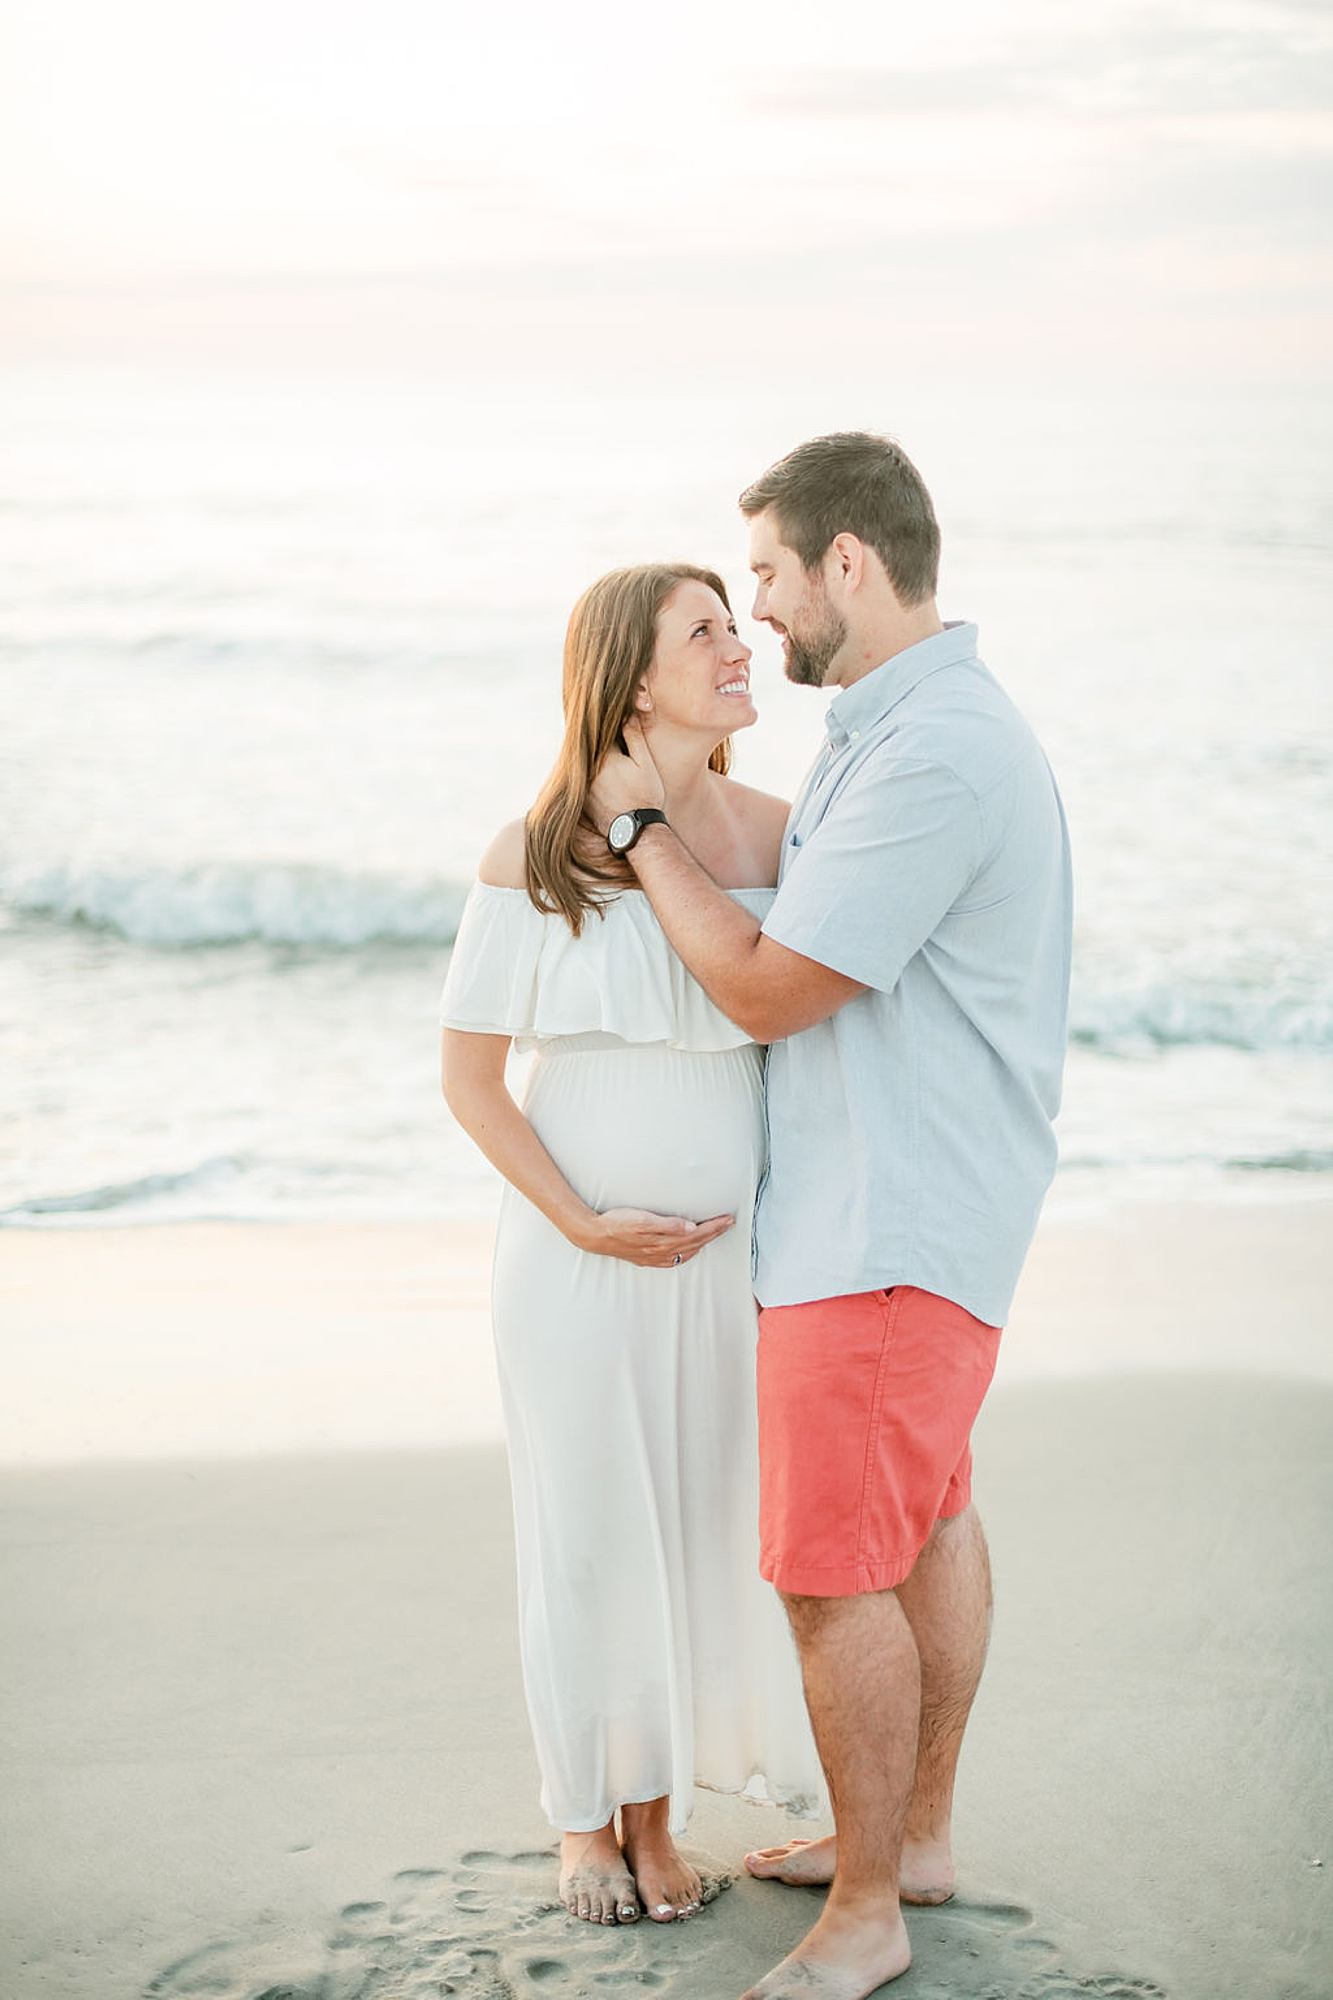 Glowy and Romantic Maternity Photography in Ocean City NJ by Magdalena Studios 0010